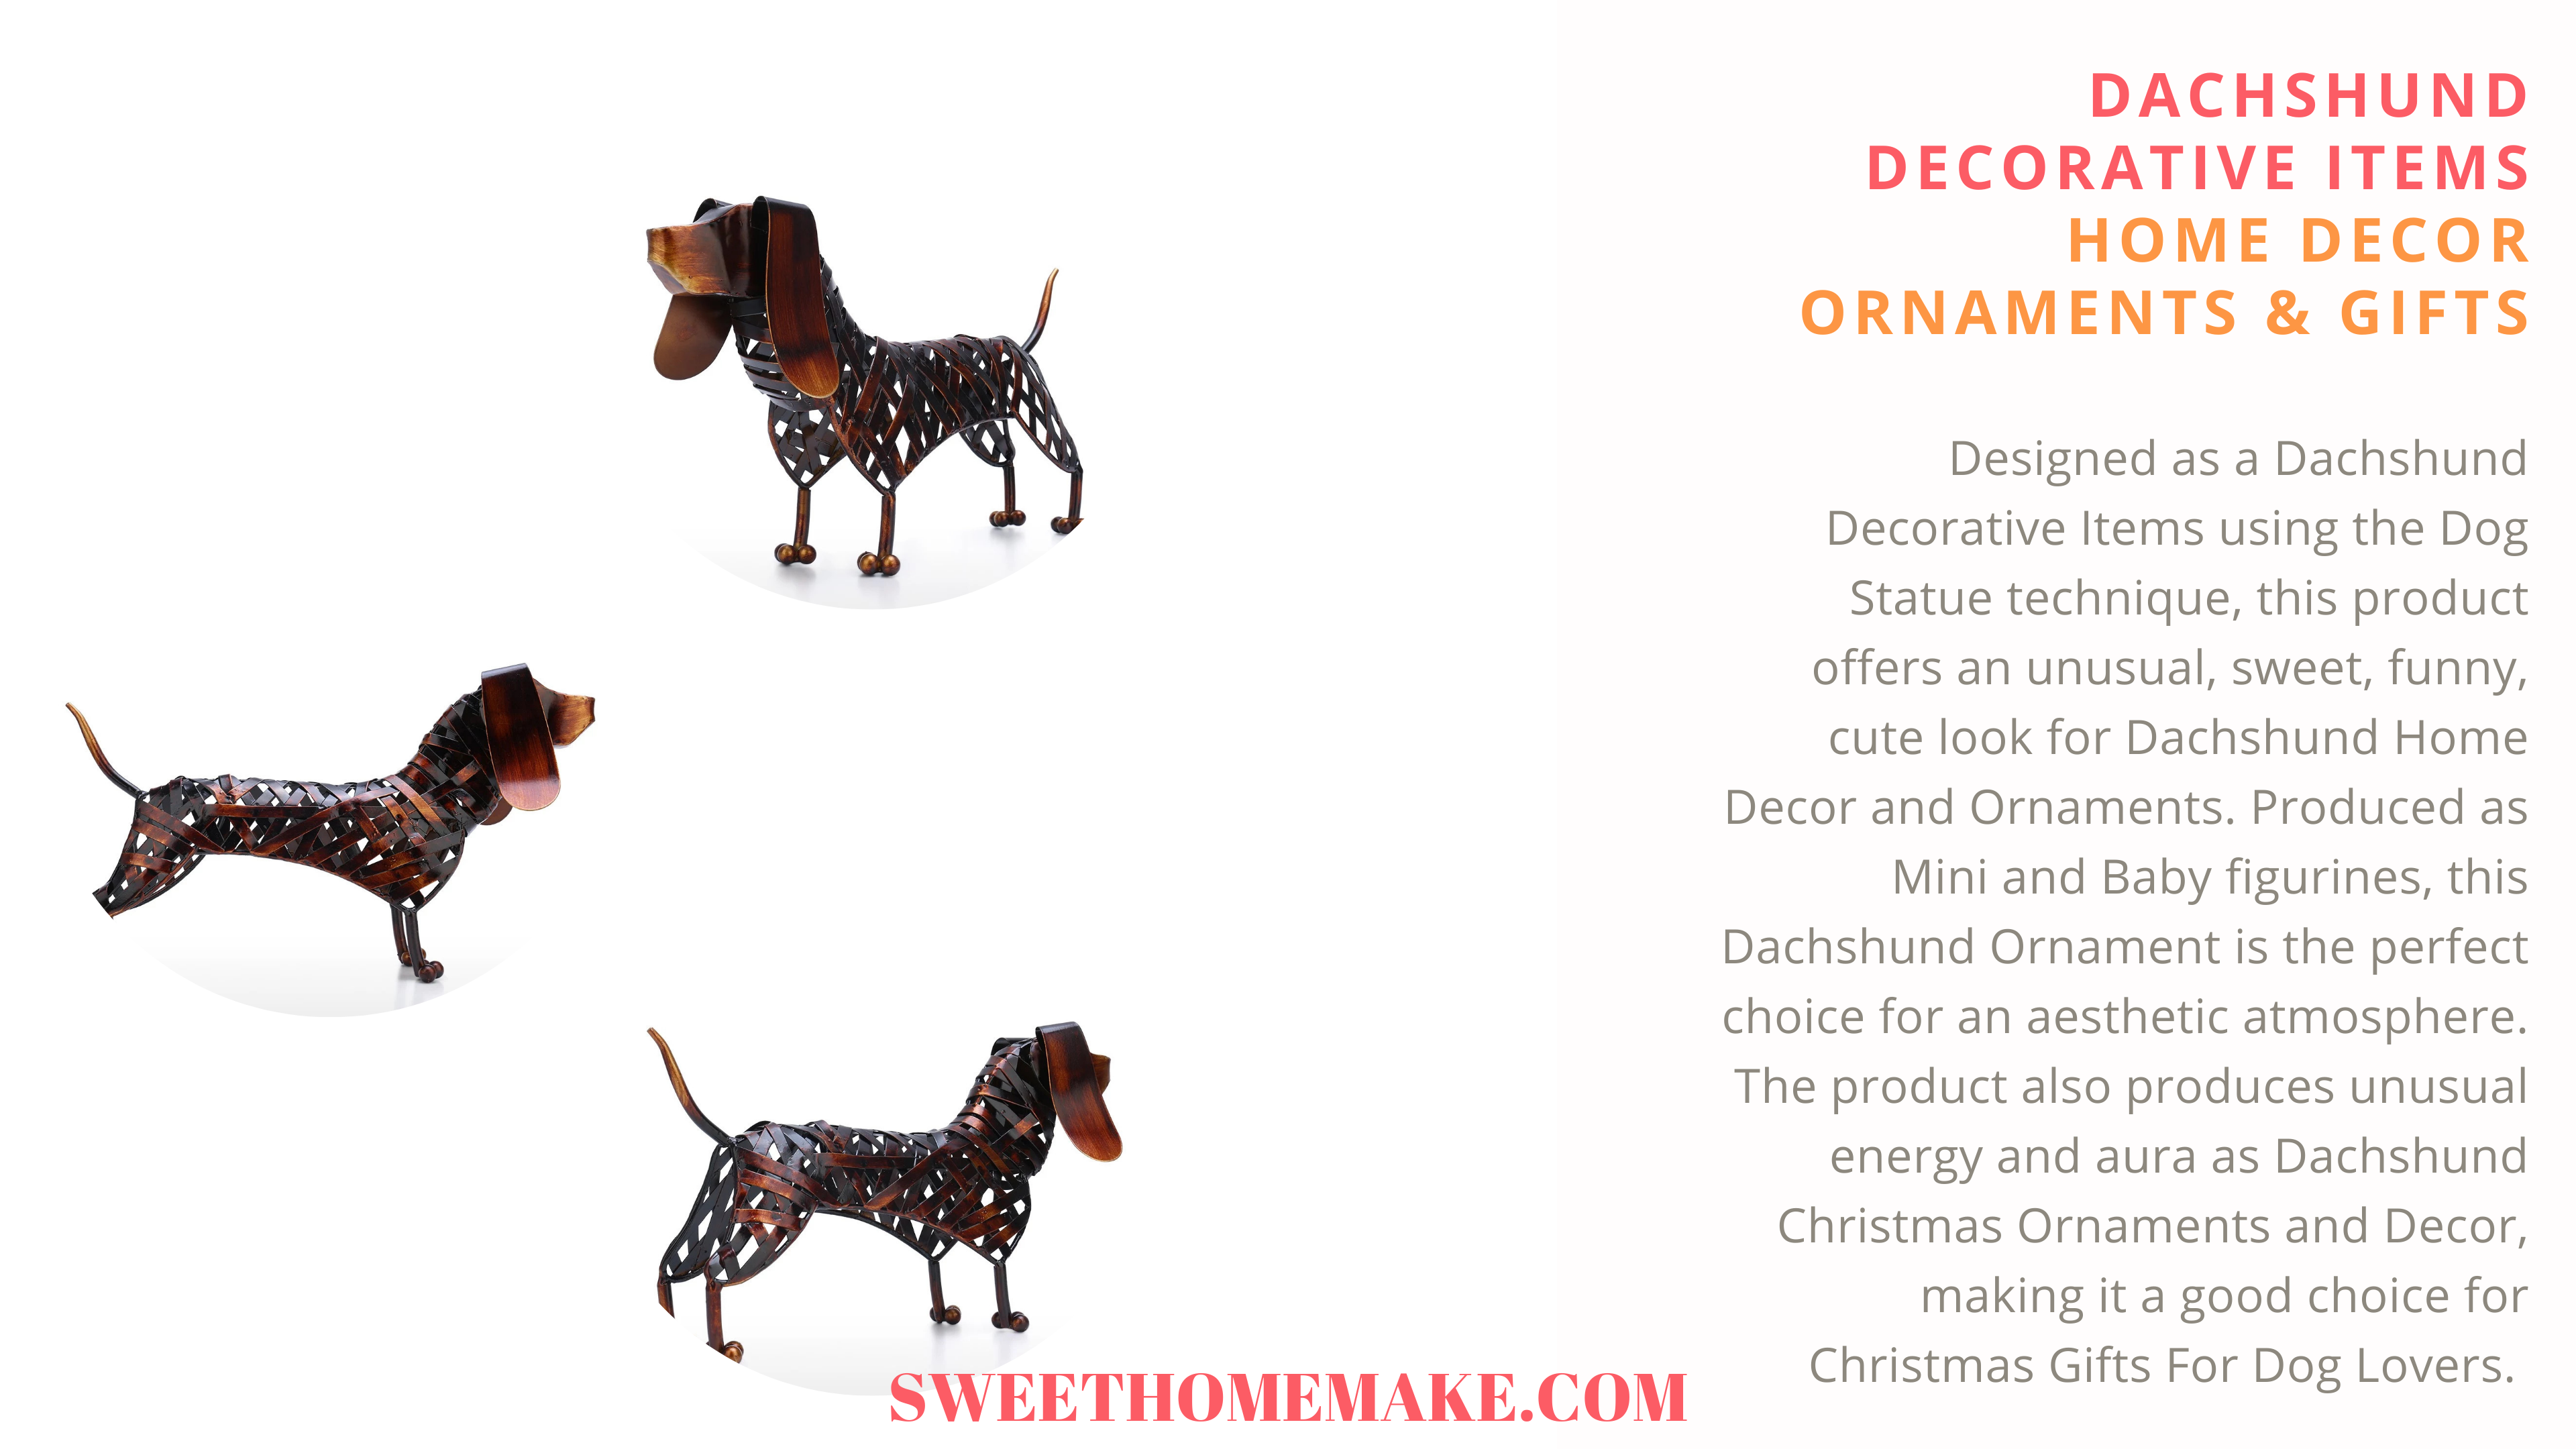 Dachshund Decorative Items Dachshund Home Decor